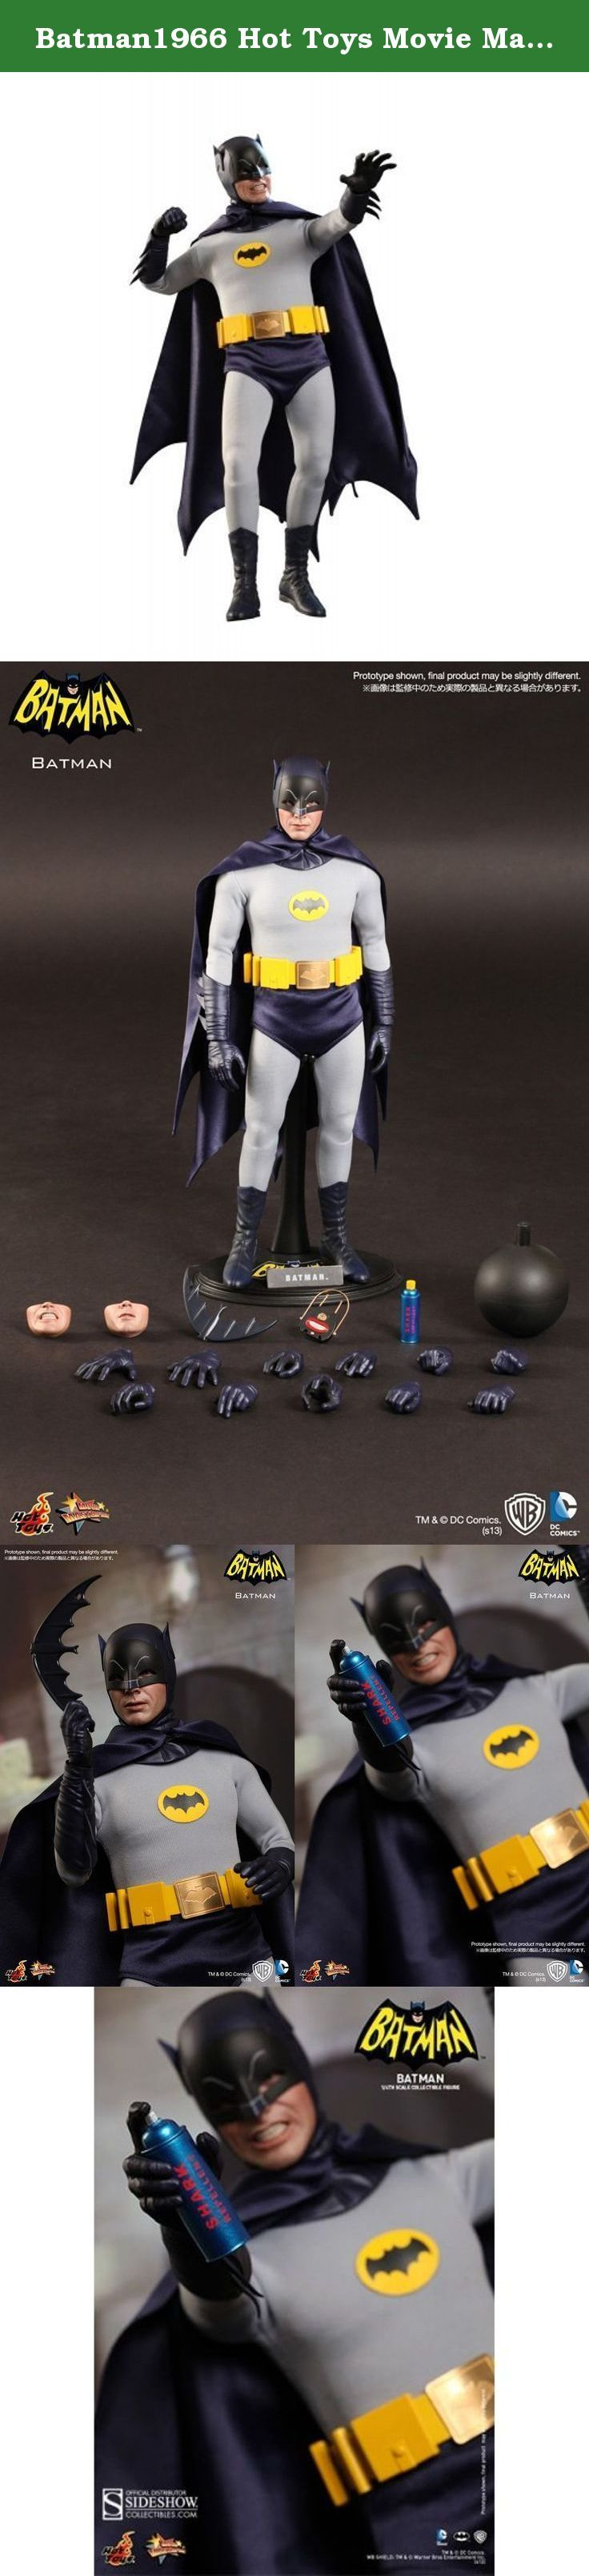 Batman1966 Hot Toys Movie Masterpiece 1/6 Scale Collectible Figure Batman. Hot Toys is excited to introduce the 1/6th scale Batman Collectible Figure from the 1966 feature film. The collectible figure is newly developed and highly detailed, which is specially crafted based on the image of Adam West as the iconic character Batman, featuring a screen-accurate masked head sculpt, specially made costume with Batman logo, weapons and accessories.Specifications.